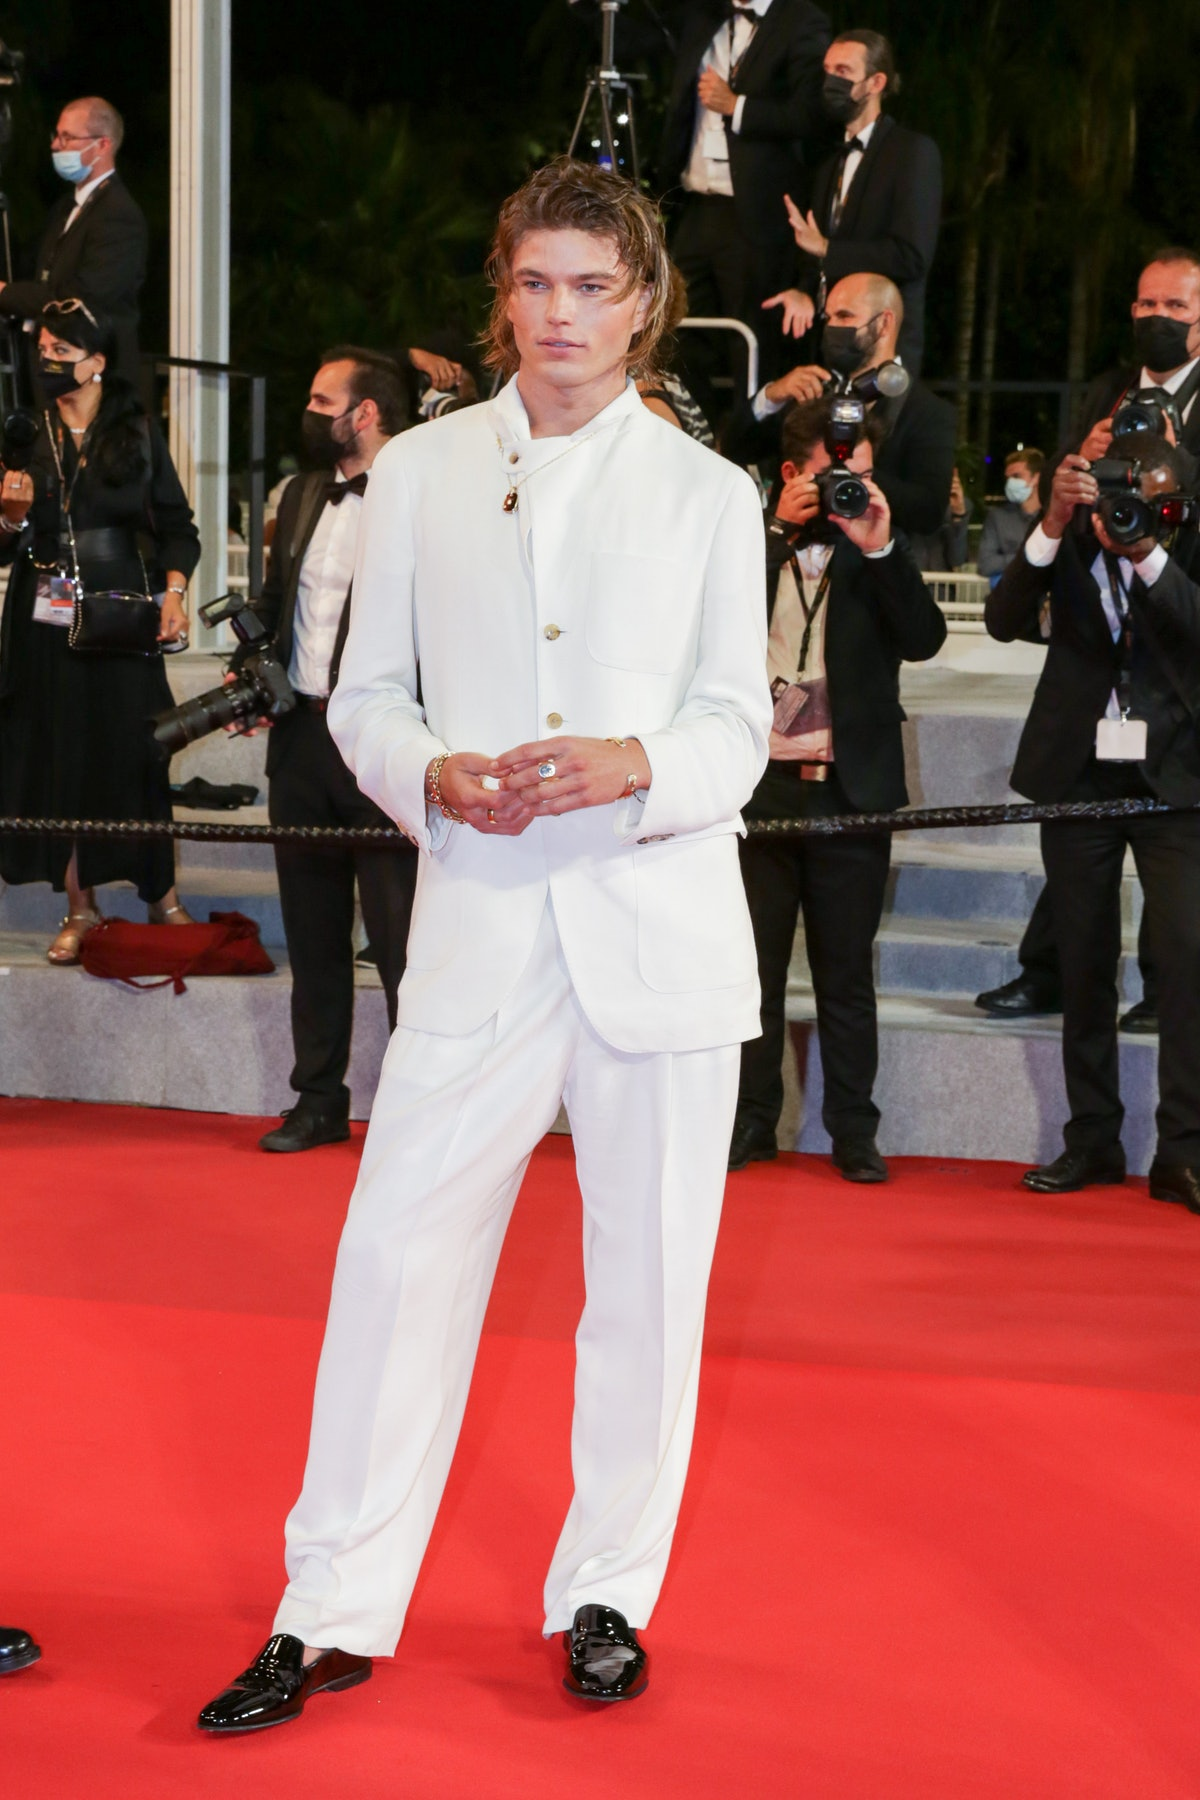 """CANNES, FRANCE - JULY 15: Jordan Barrett attends the """"Haut Et Fort (Casablanca Beats)"""" screening during the 74th annual Cannes Film Festival on July 15, 2021 in Cannes, France. (Photo by Stephane Cardinale - Corbis/Corbis via Getty Images)"""